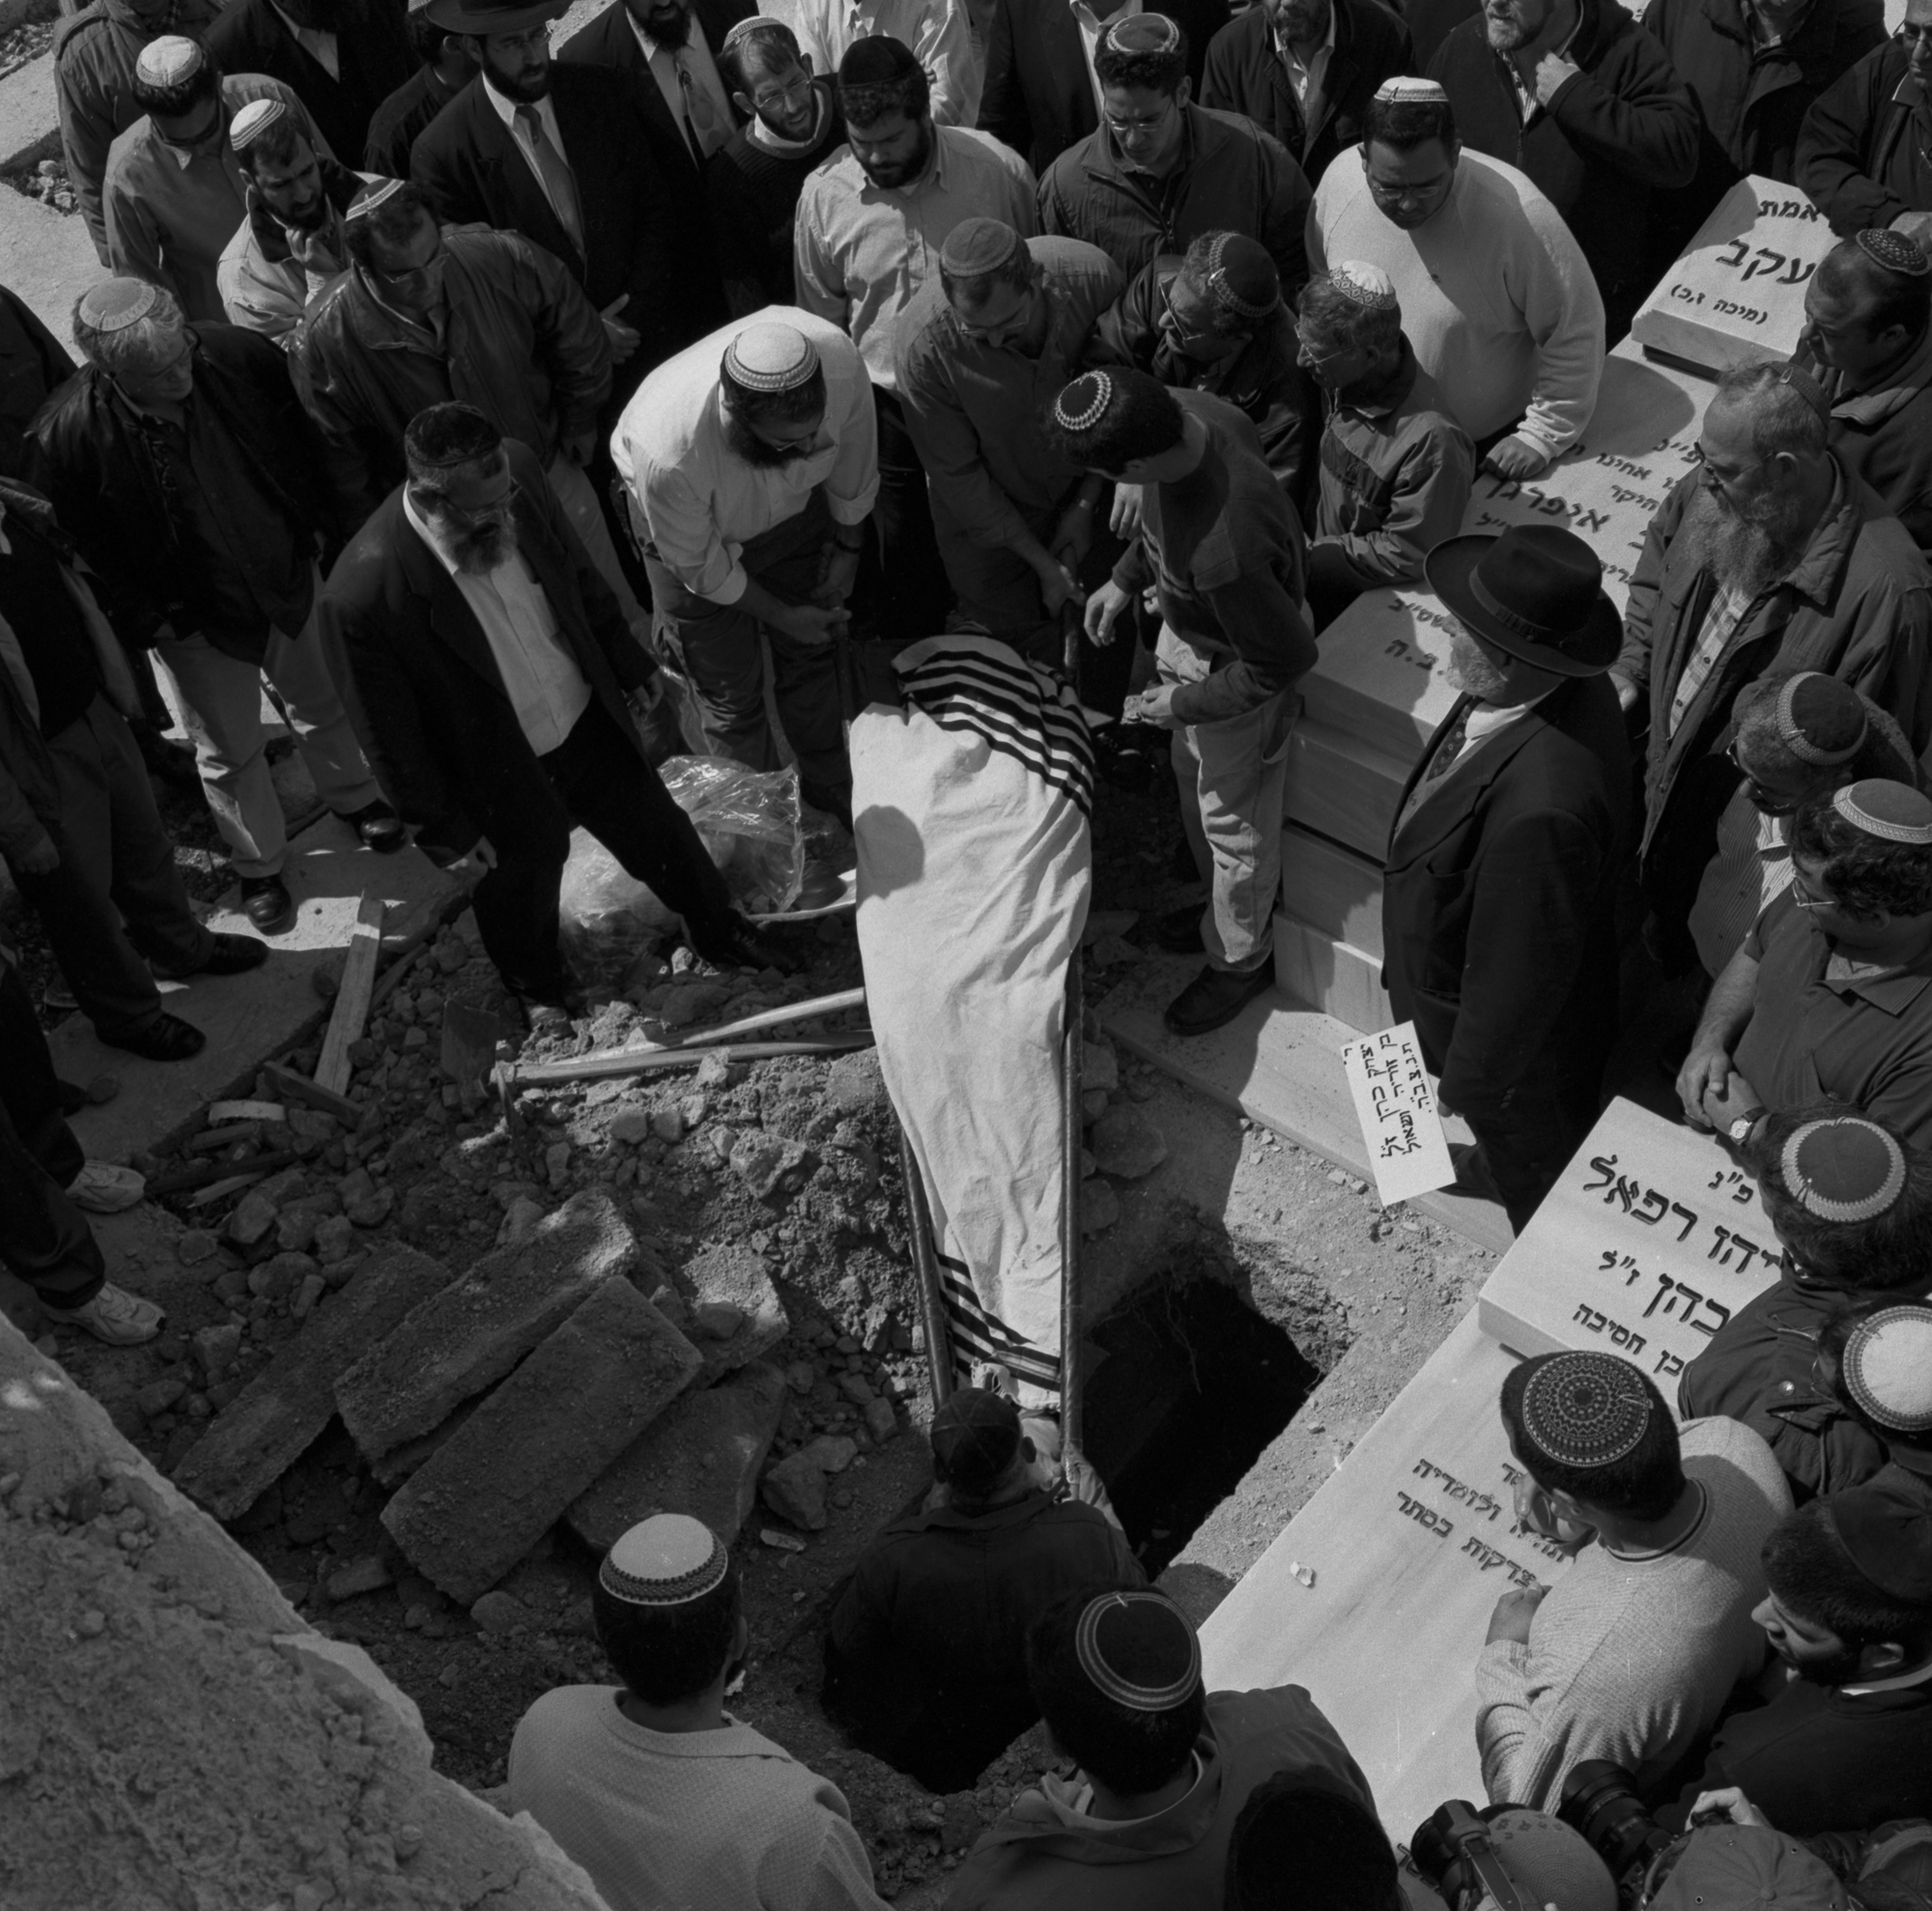 Funerals of of a victim of King George Street bombing where three people were killed in a suicide bombing, Jerusalem 2002.